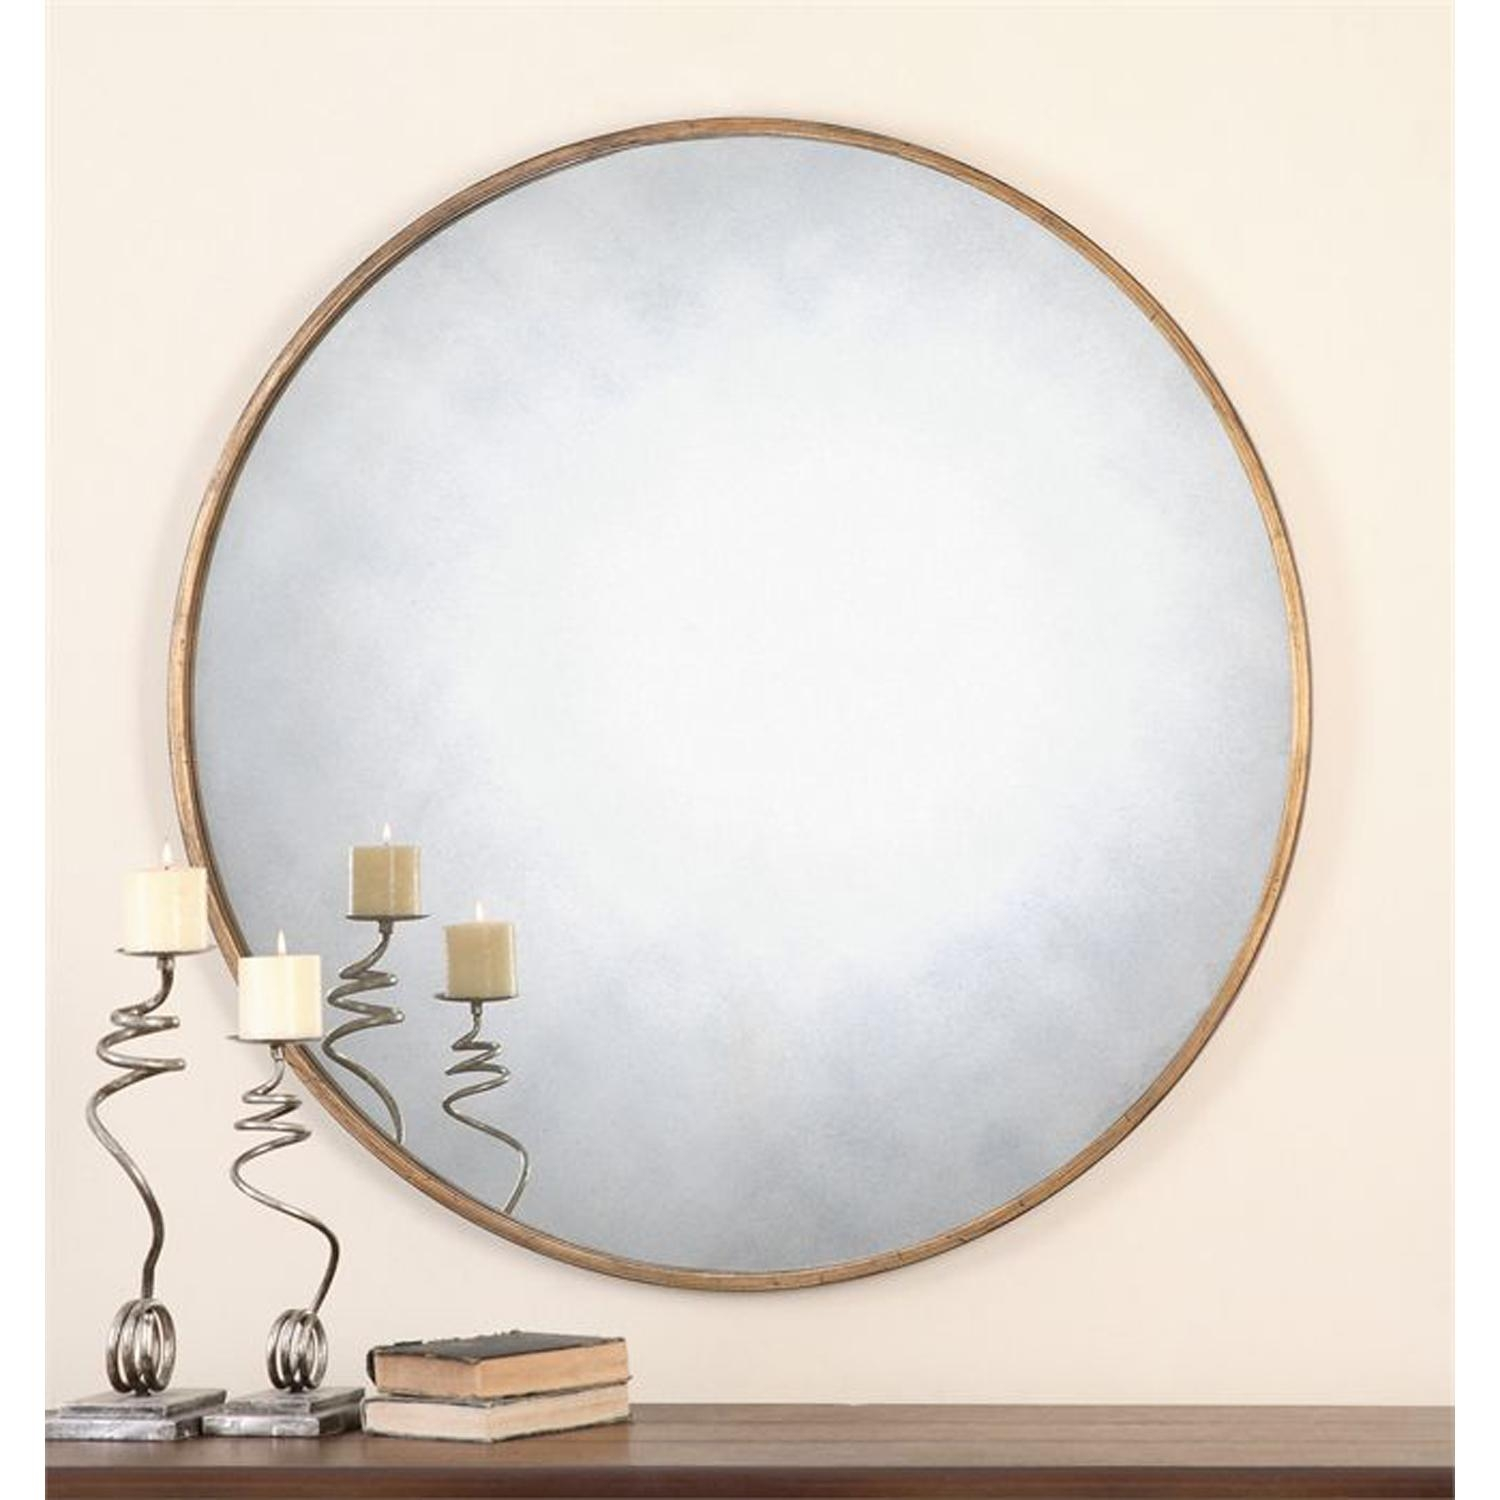 Junius Round Gold Round Mirror Uttermost Wall Mirror Mirrors Home Throughout Large Round Gold Mirror (Image 5 of 20)